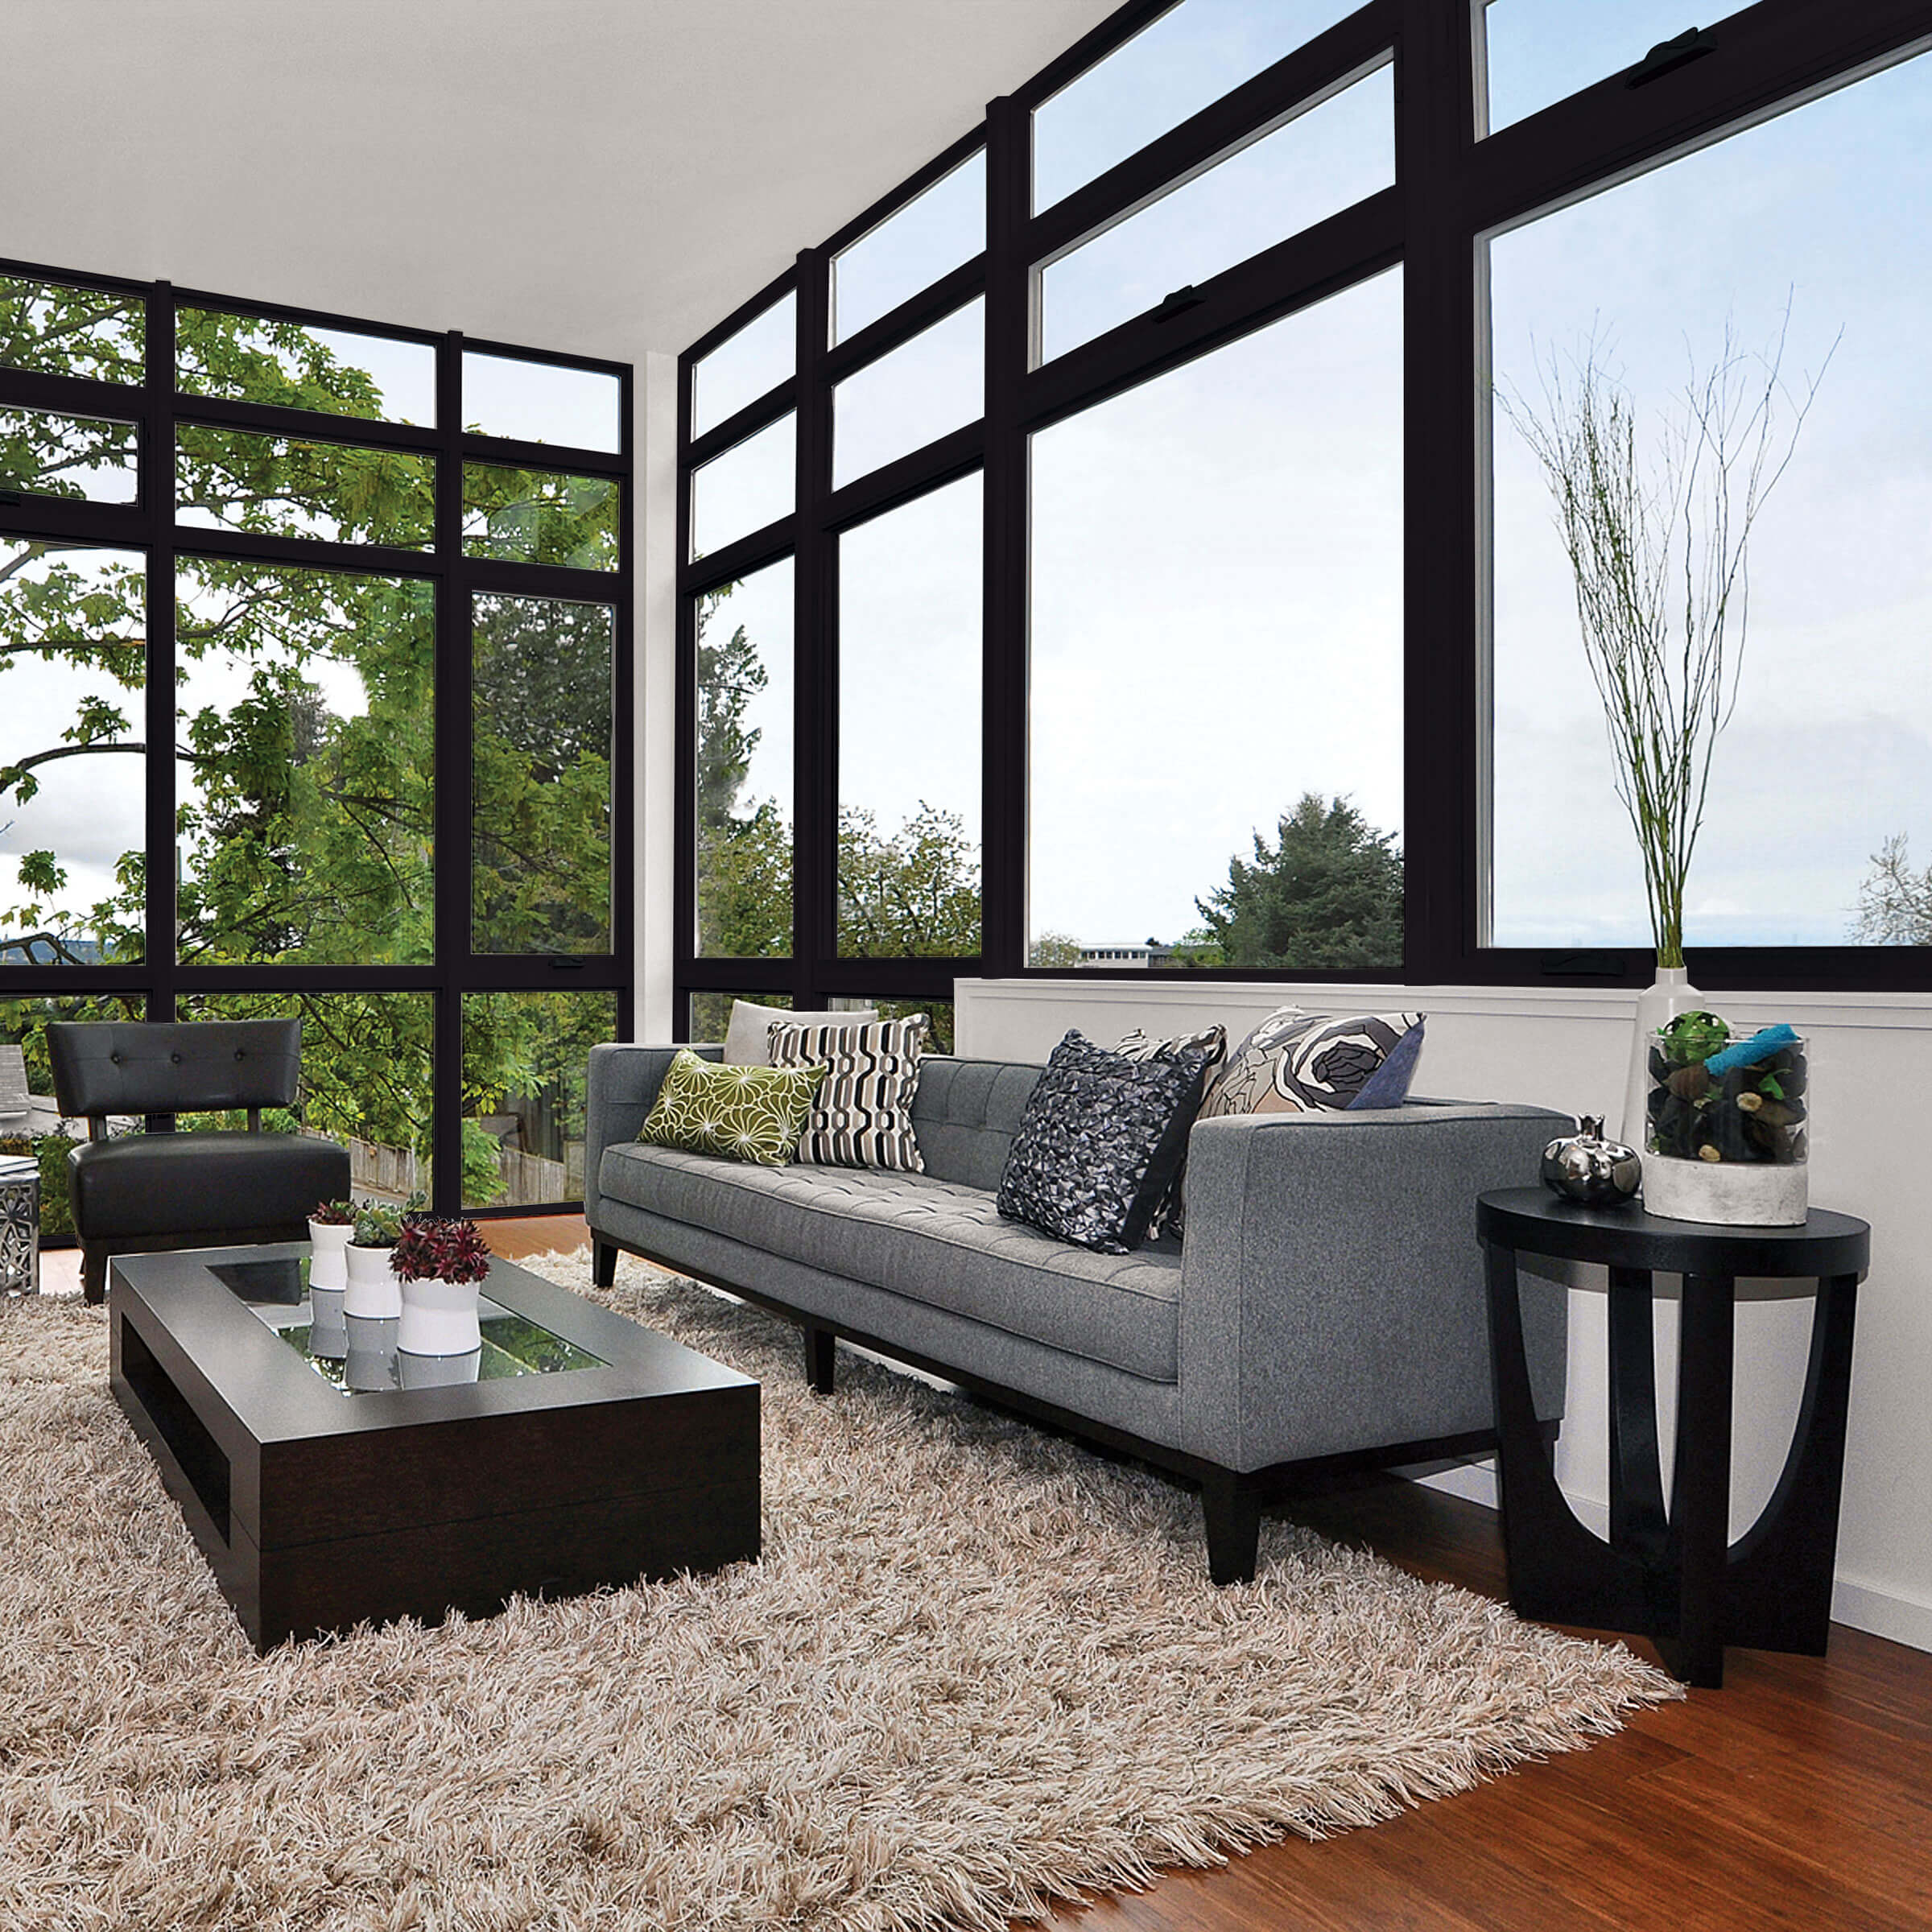 Modern Living Room With Marvin Essential Awning Windows In Ebony